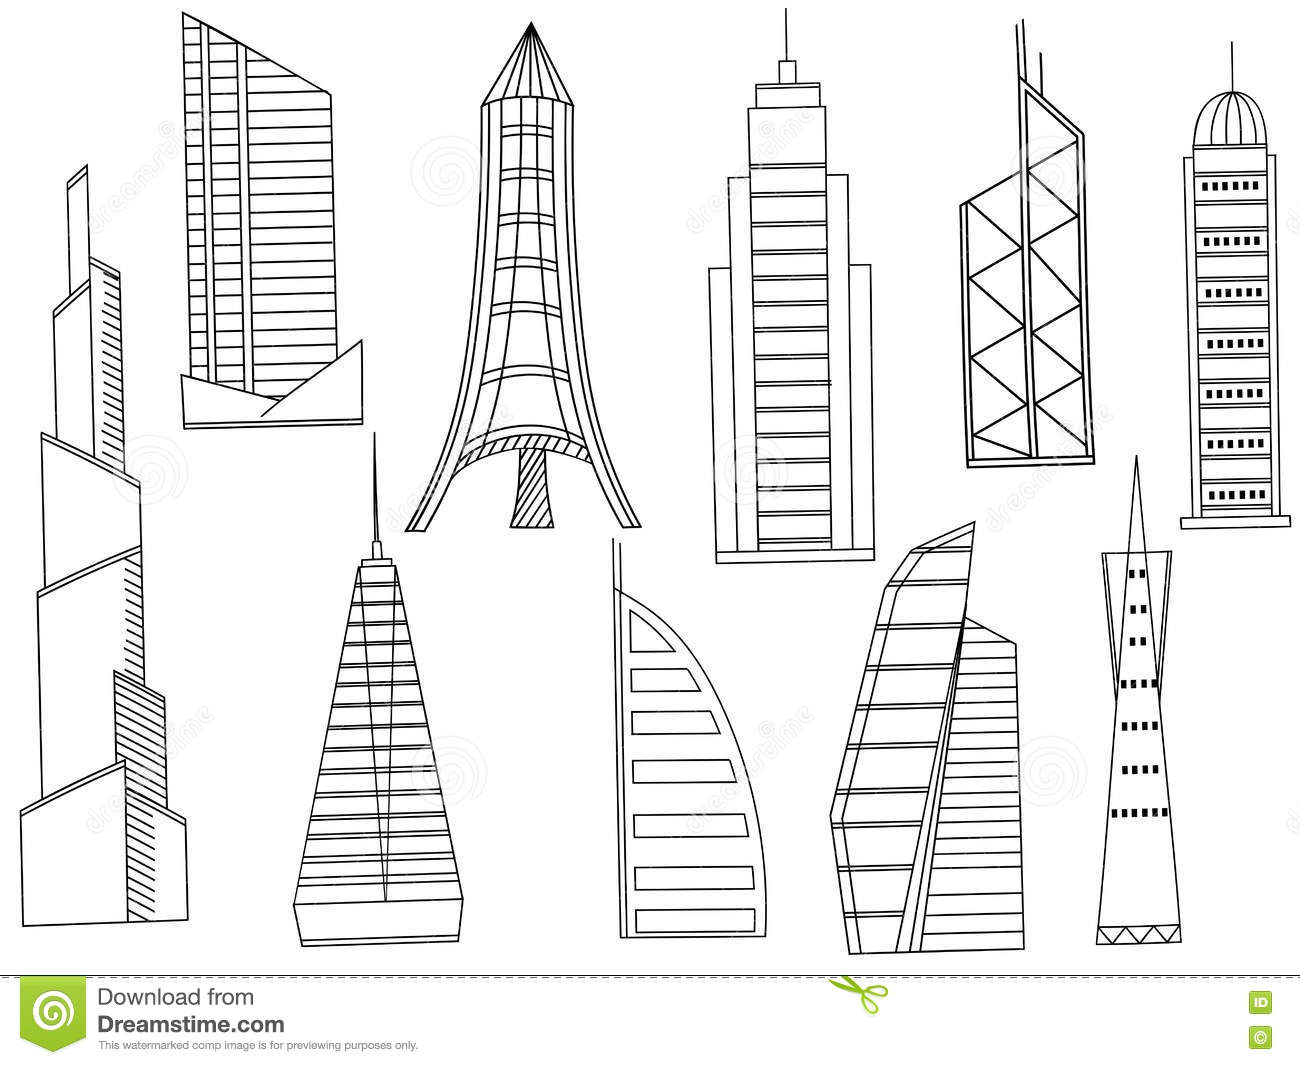 Coloring book real estate - Tall Buildings Coloring Book Vector Royalty Free Stock Photography